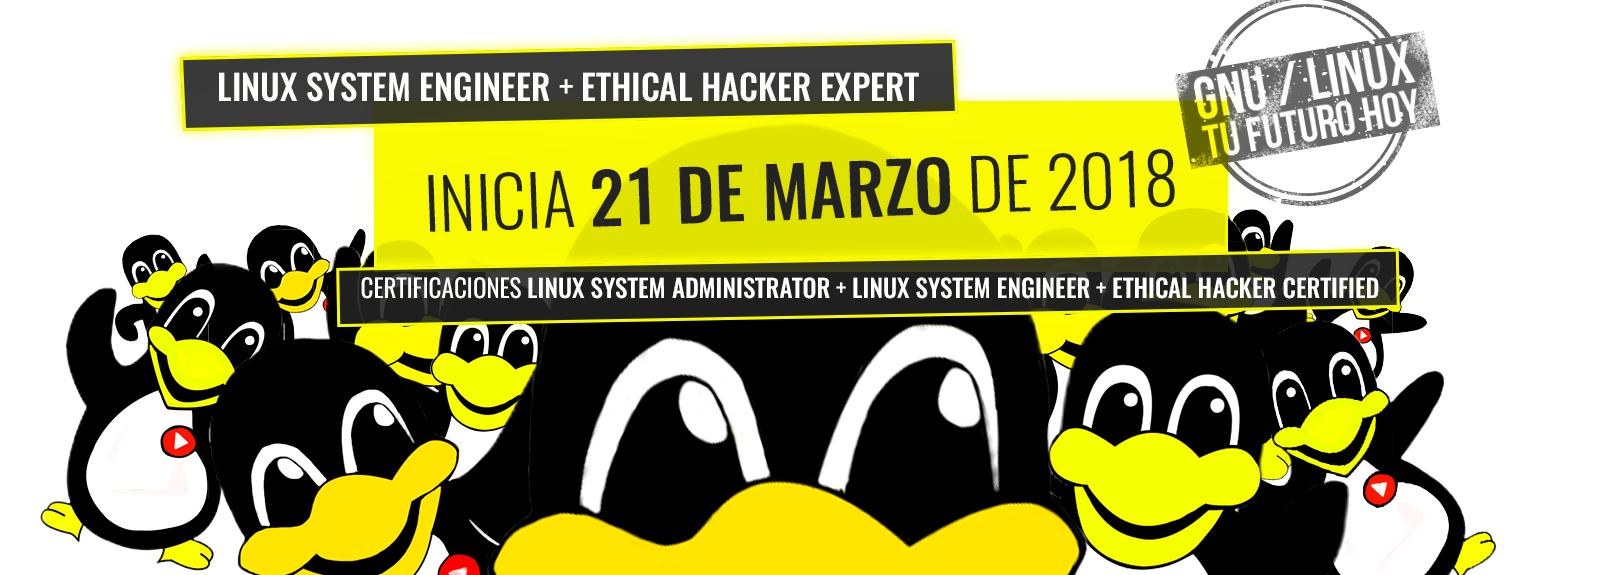 Linux system engineer + ethical hacker expert